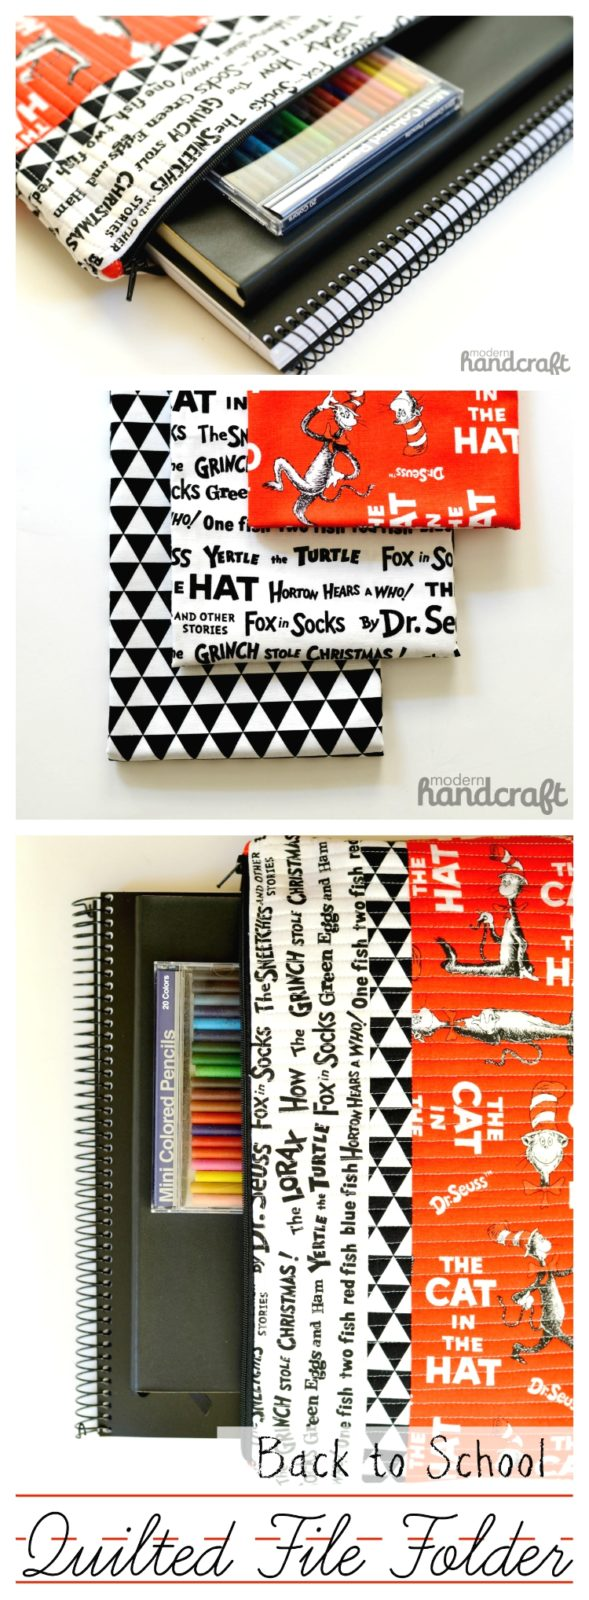 Back to school quilted file folder DIY  ||  Dr. Seuss inspired